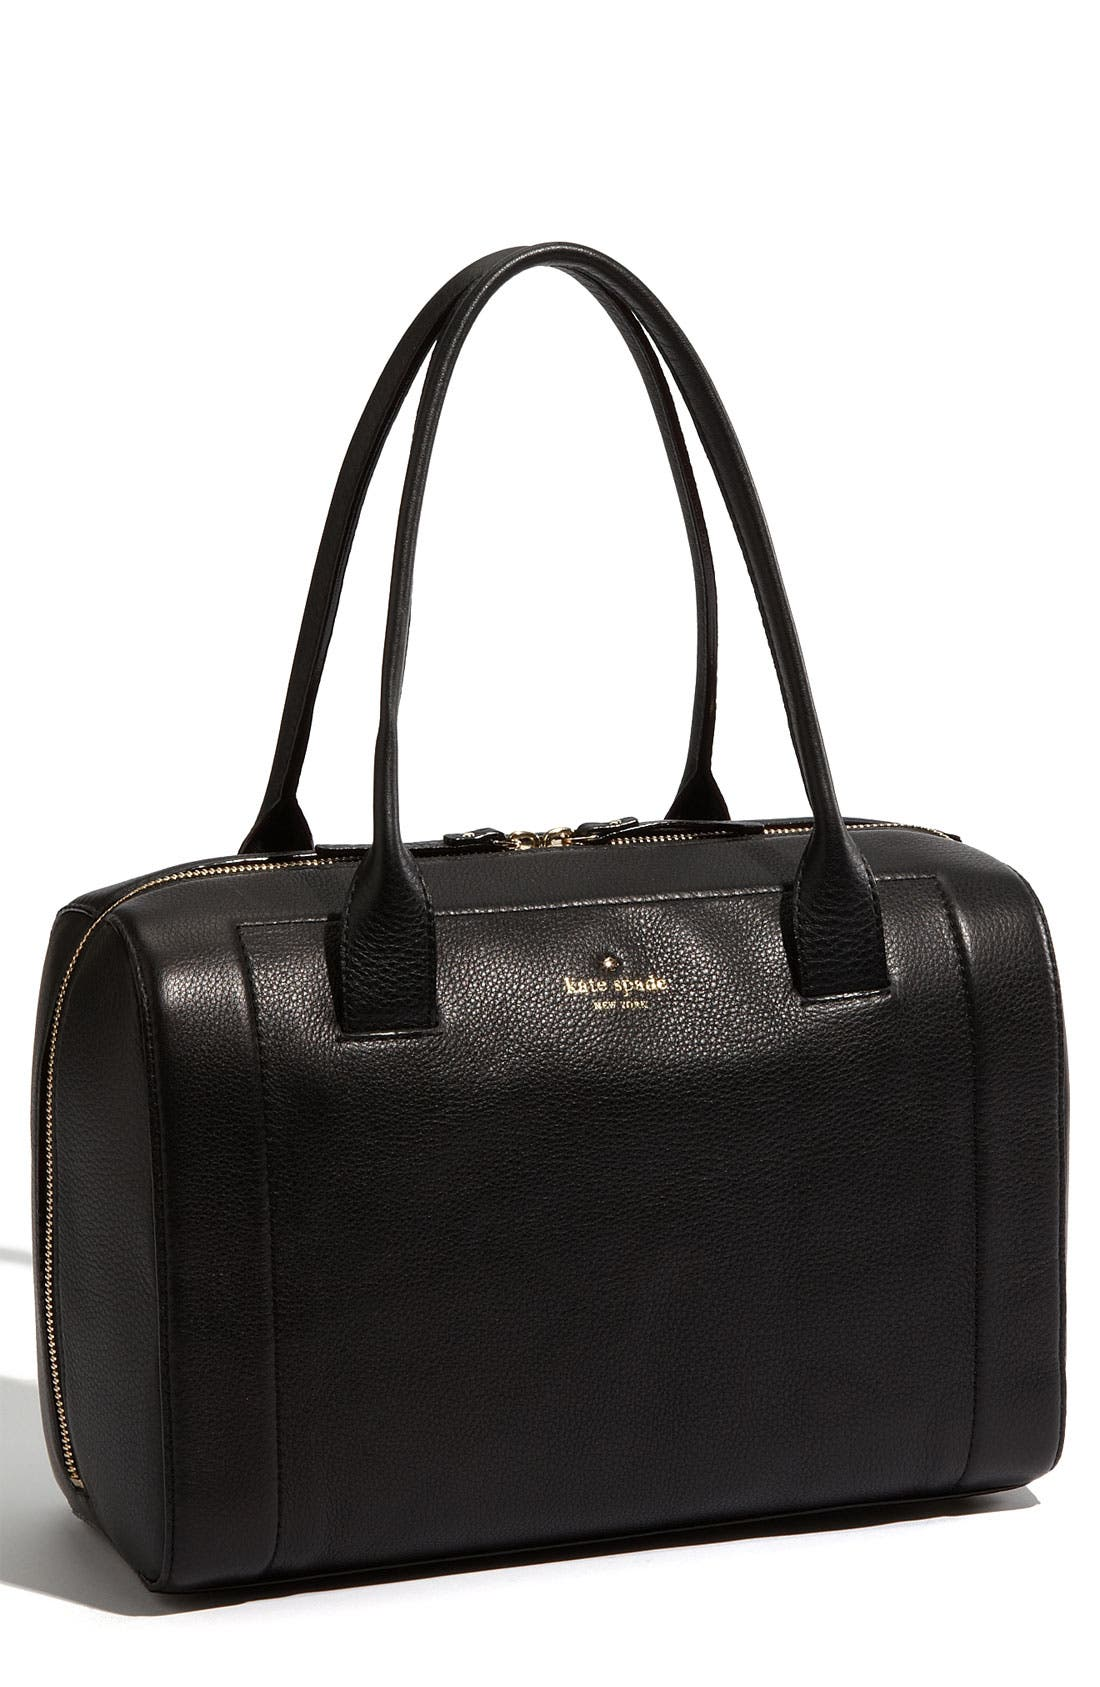 Main Image - kate spade new york 'mansfield liv' satchel